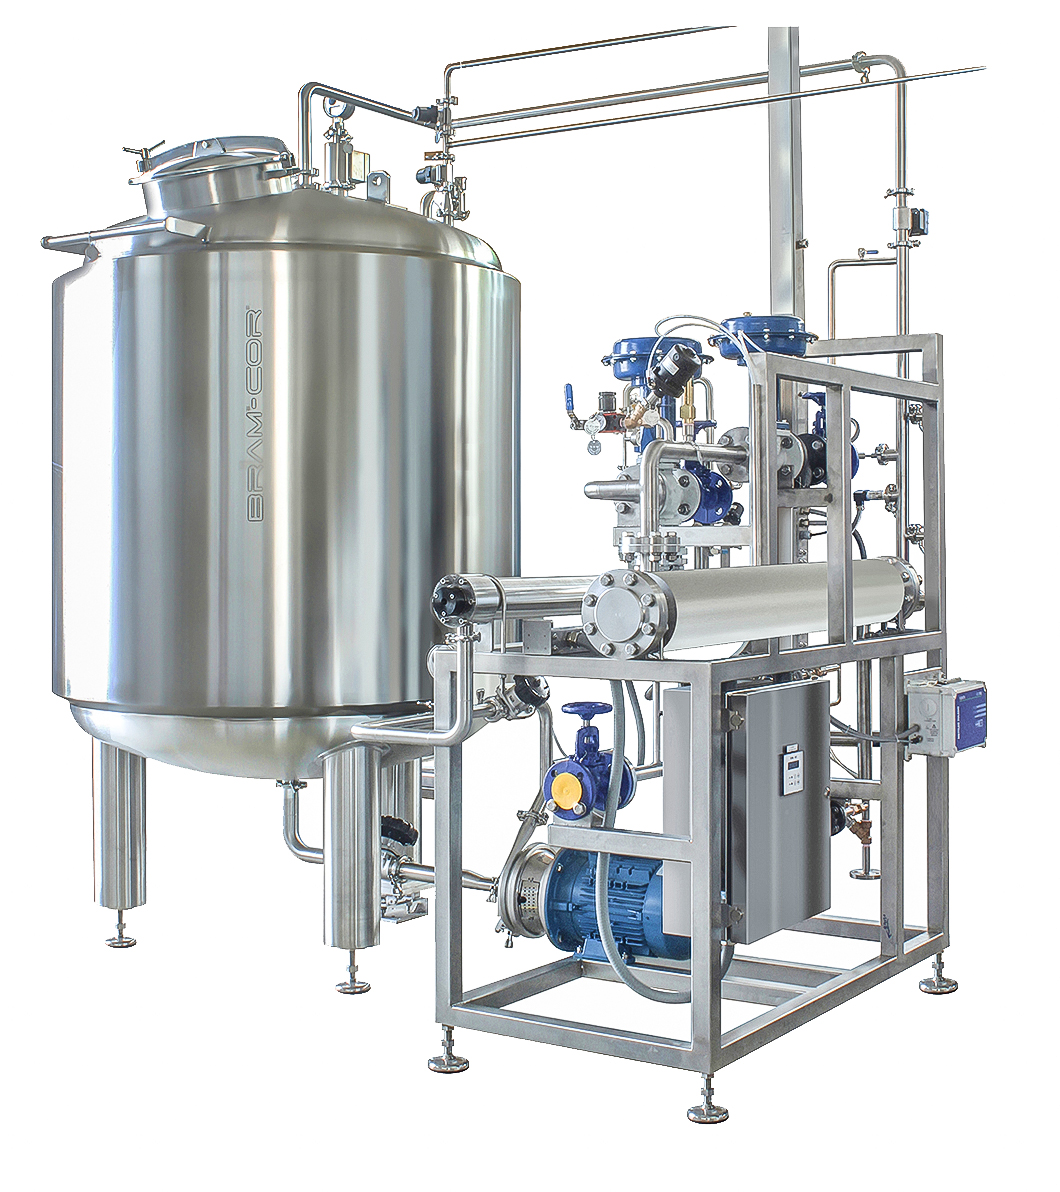 Bram Cor Pharmaceutical Equipment Loop Distribution Systems